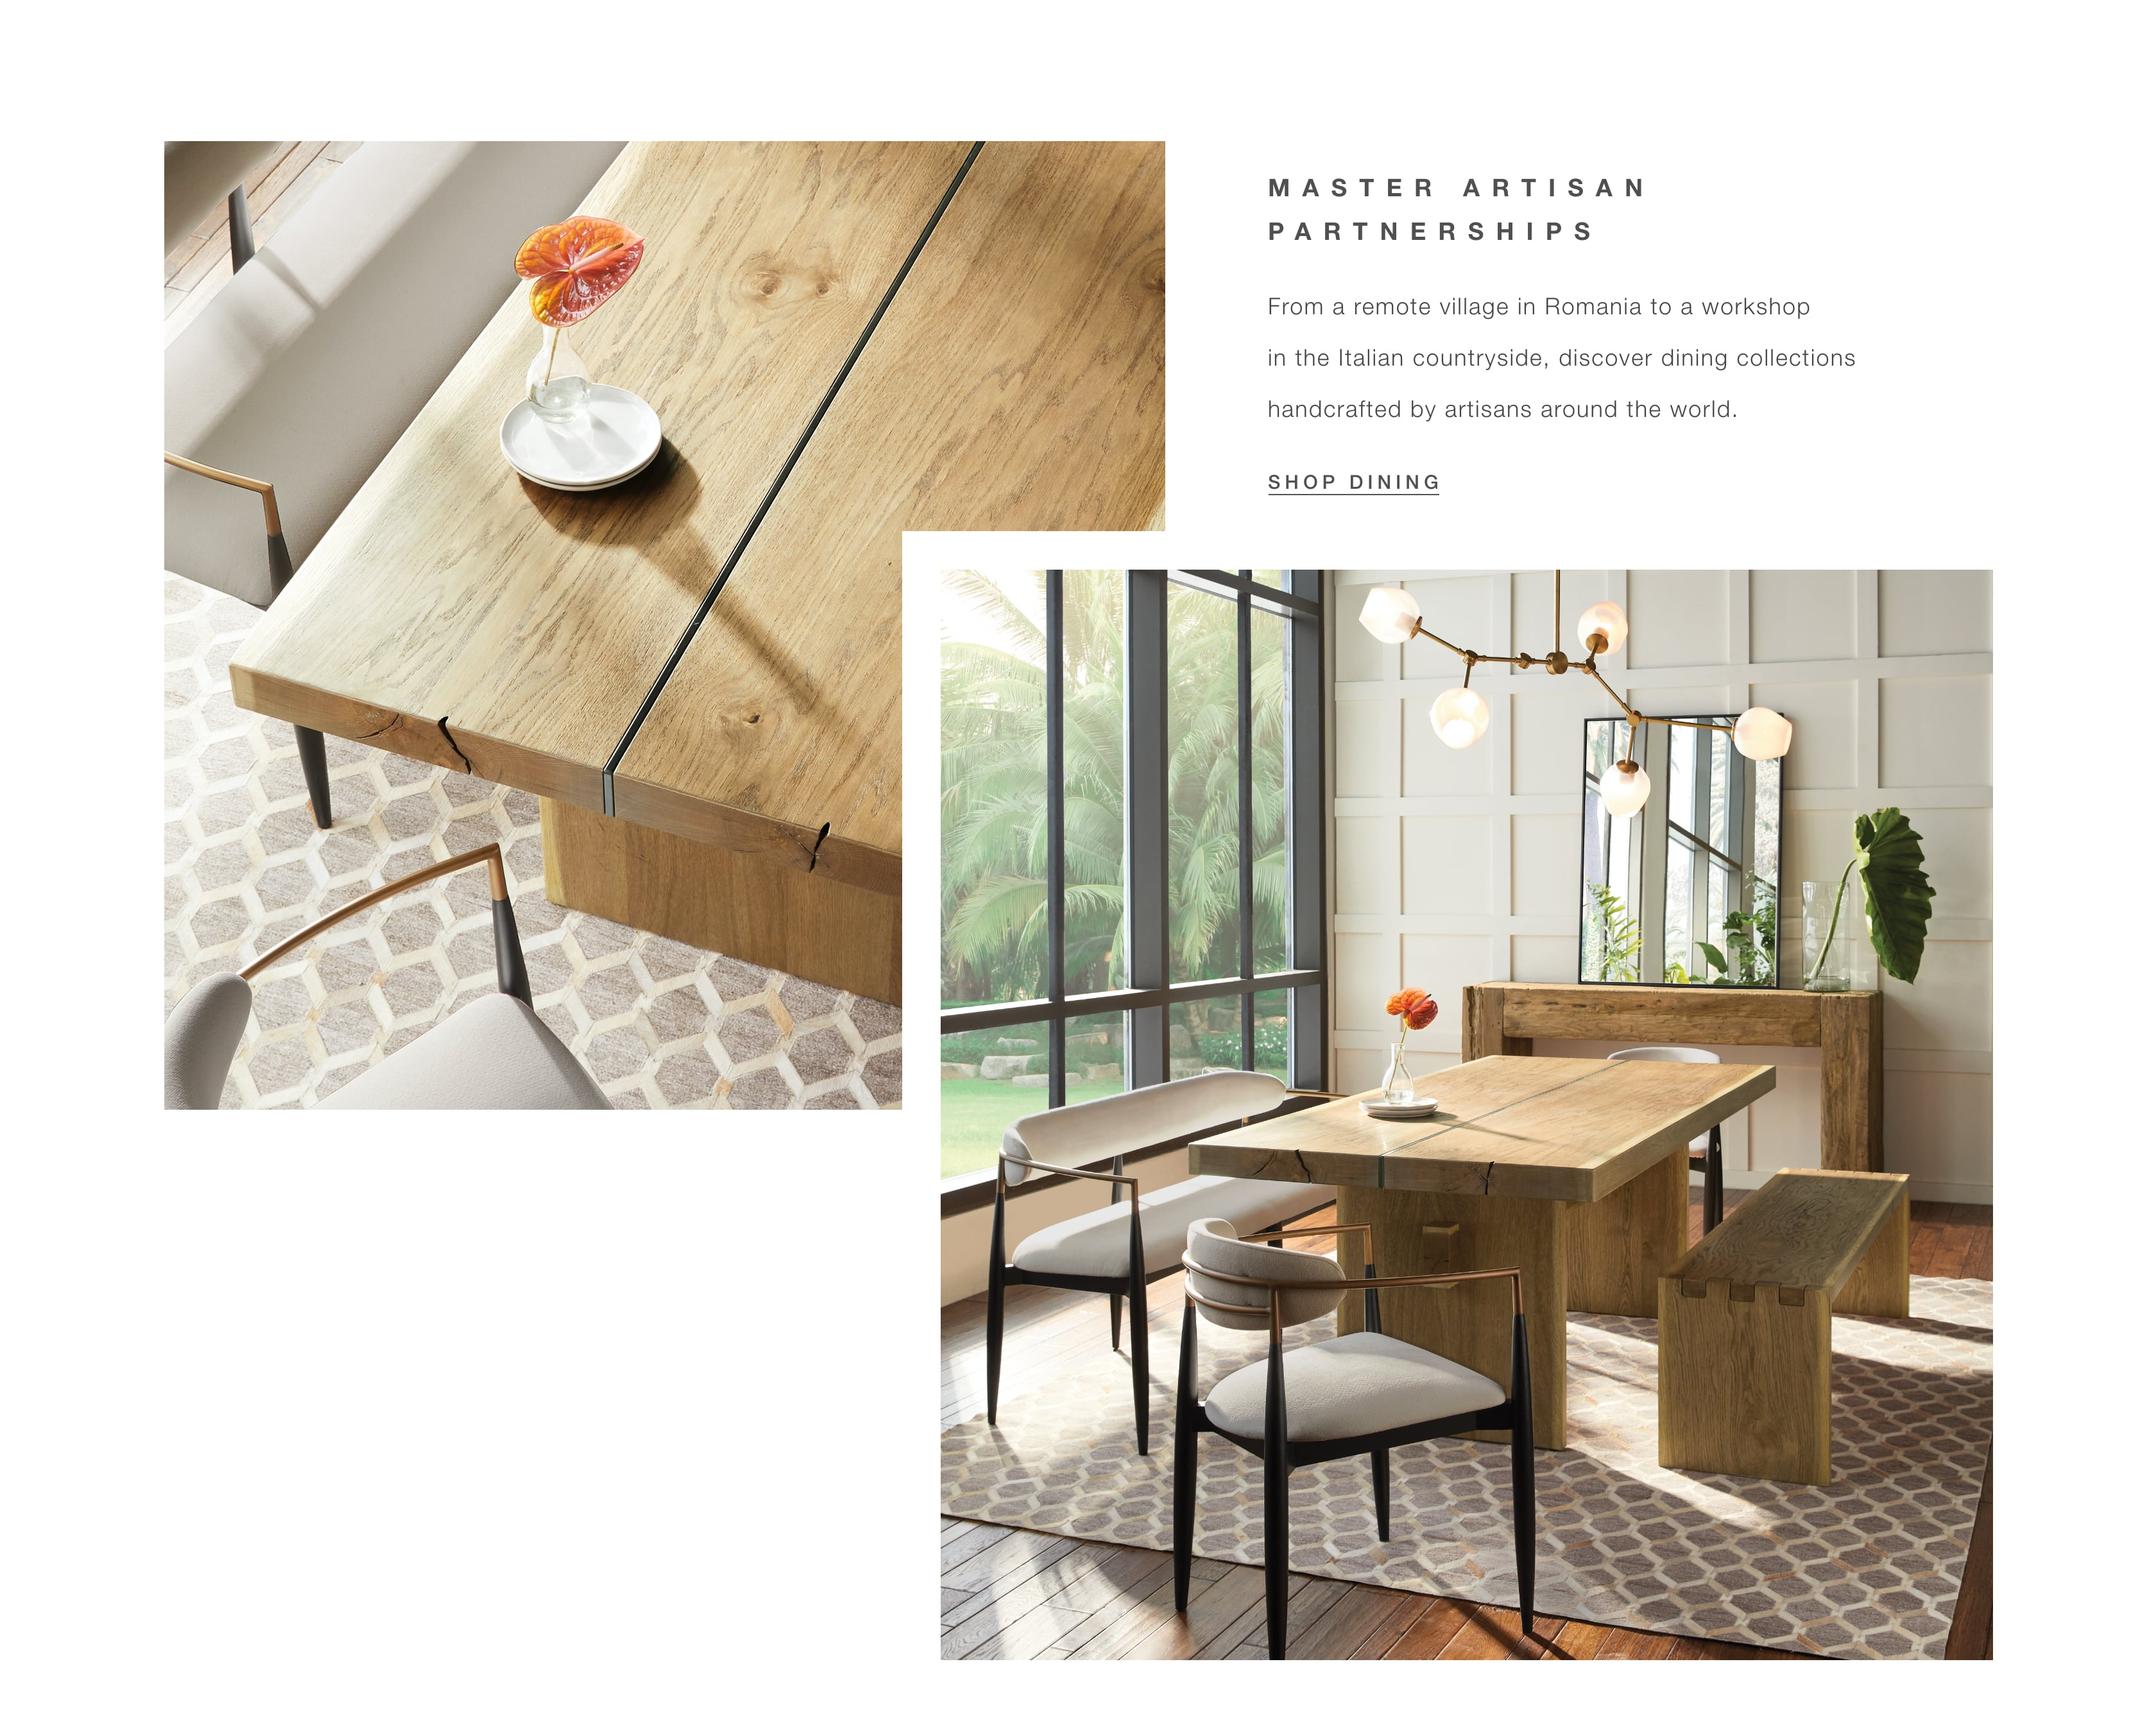 Shop Dining Room Furniture Made by Our Master Artisan Partners